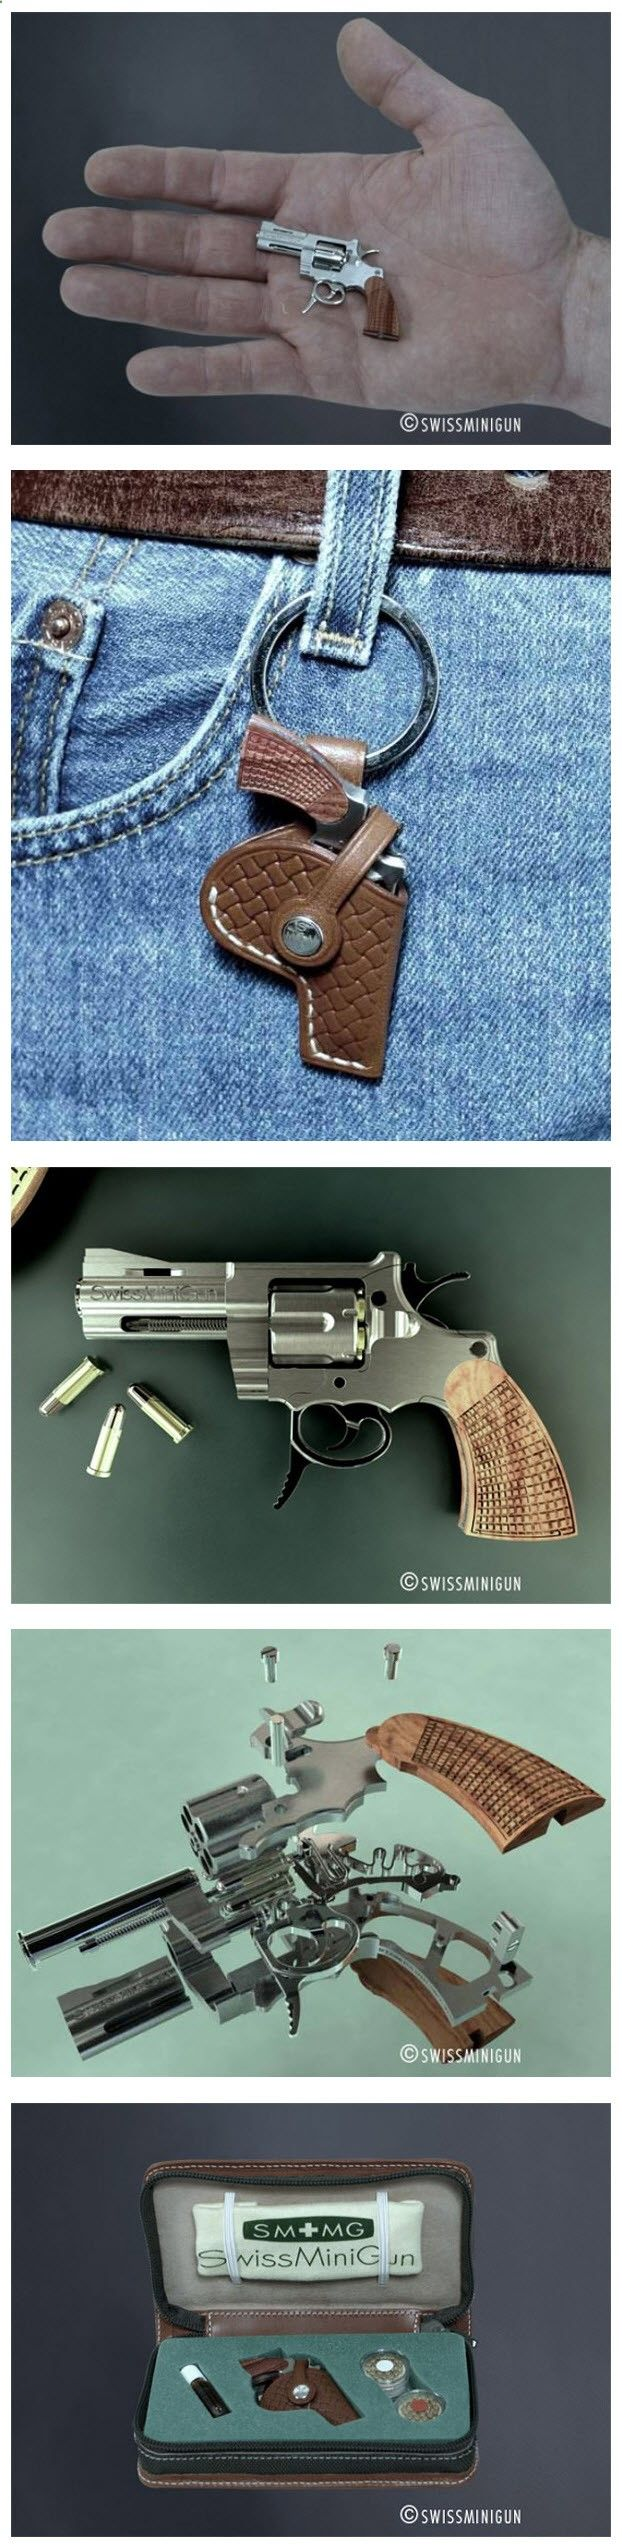 Measuring in at 5.5 cm long, SwissMiniGun produces the smallest functioning revolver in the world. The miniature gun, which comes complete with a miniature holster, has all the same features found on a regular size gun. The manufacturing of this tiny revolver was made possible by exploiting the latest technologies and expertise of the Swiss watch and jewellery Industry